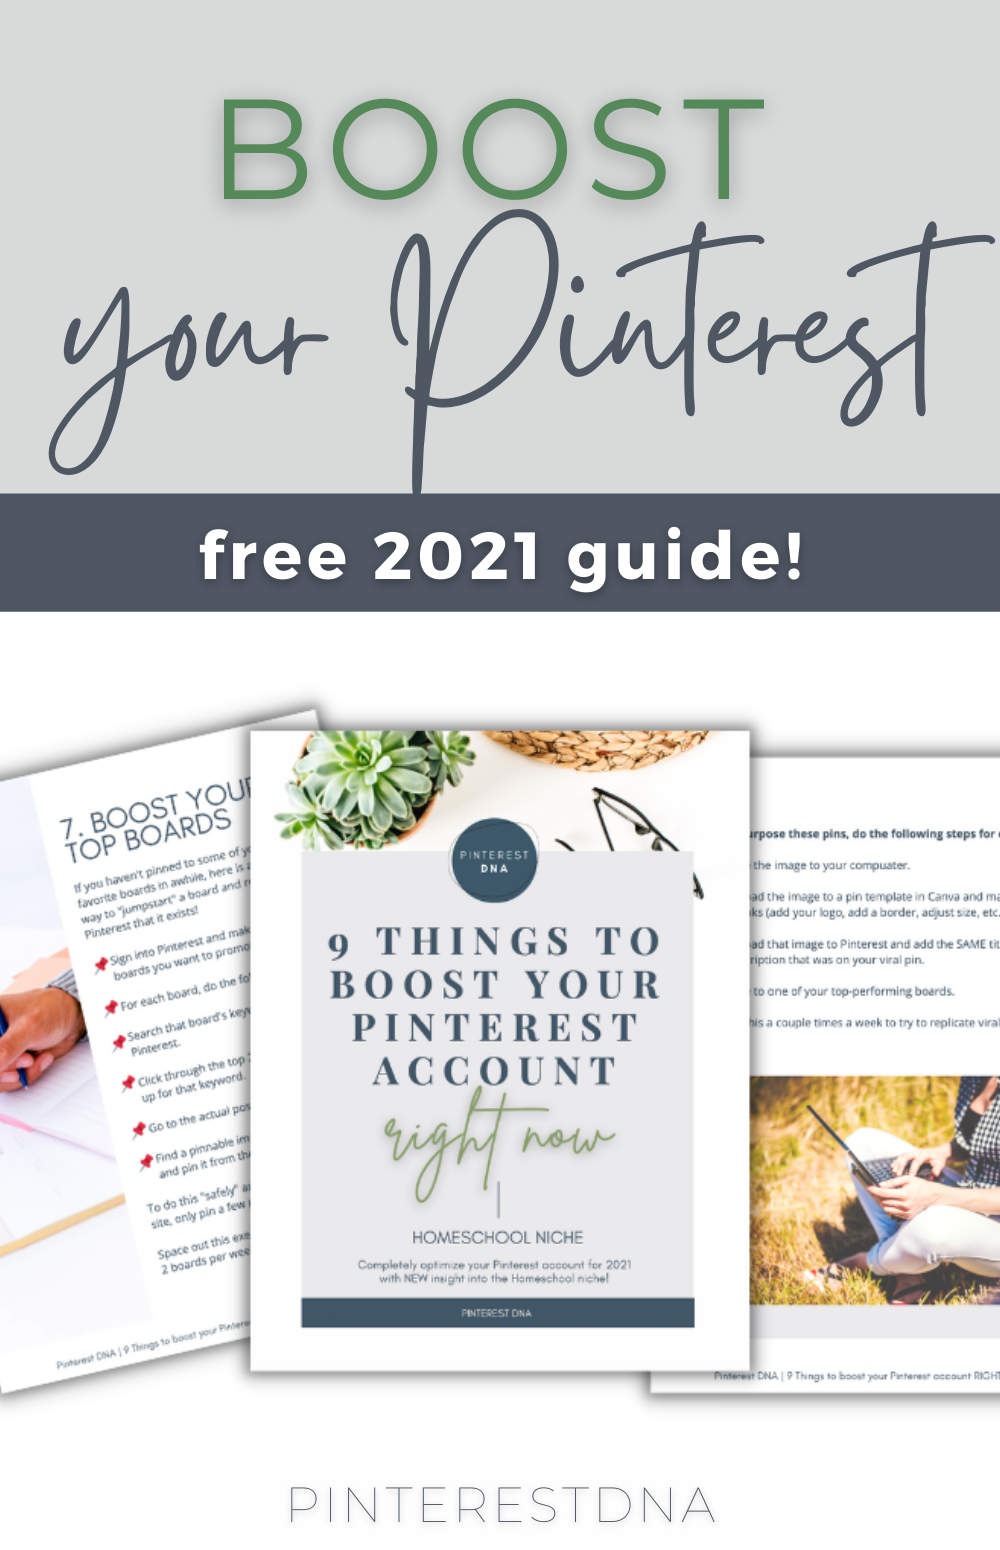 9 Things to boost your Pinterest account RIGHT NOW - Homeschool